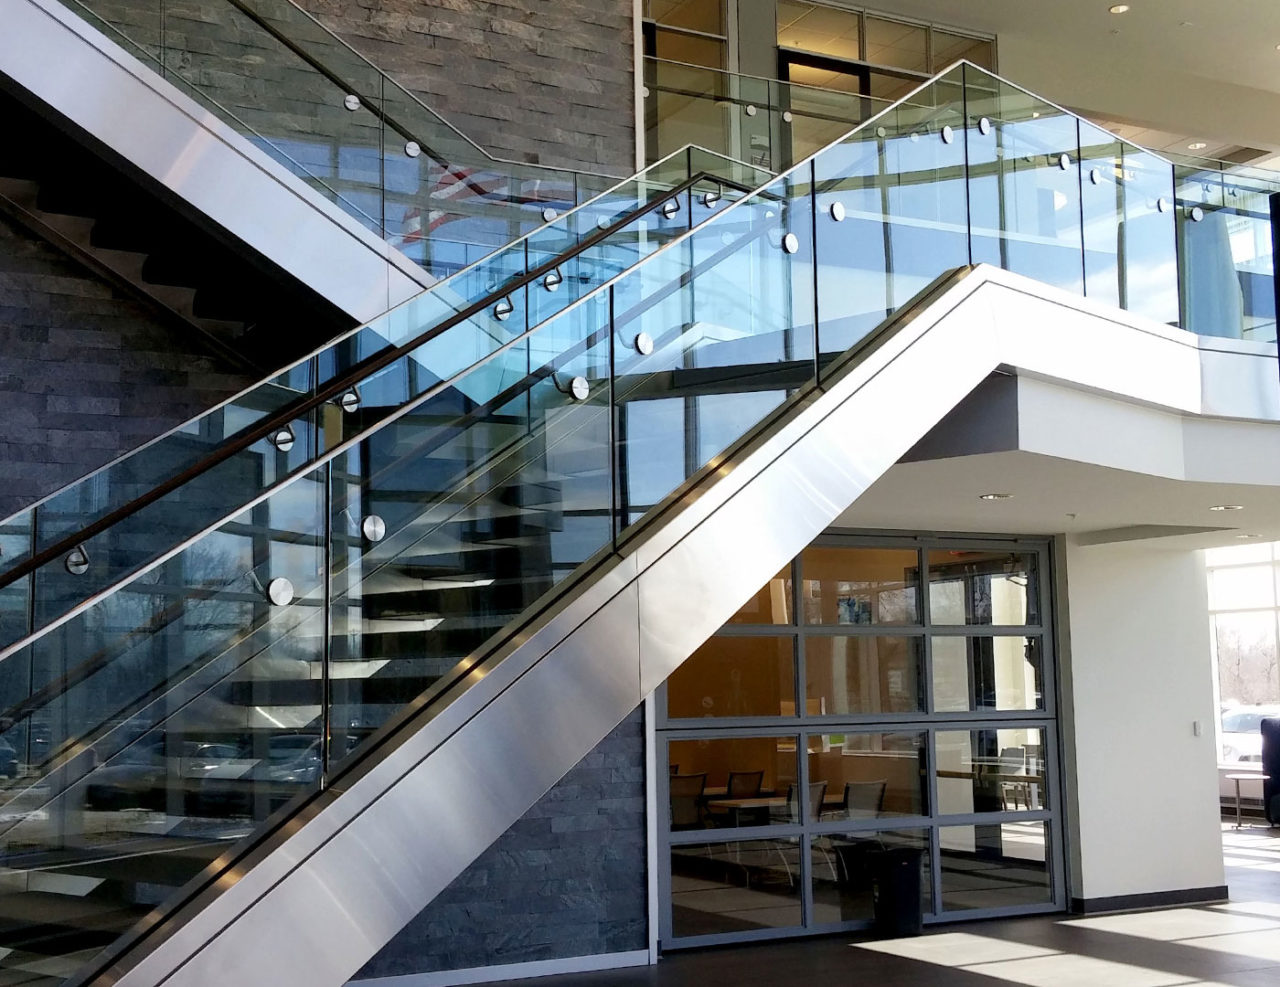 Base shoe commercial glass railing trex commercial products for Architectural railings